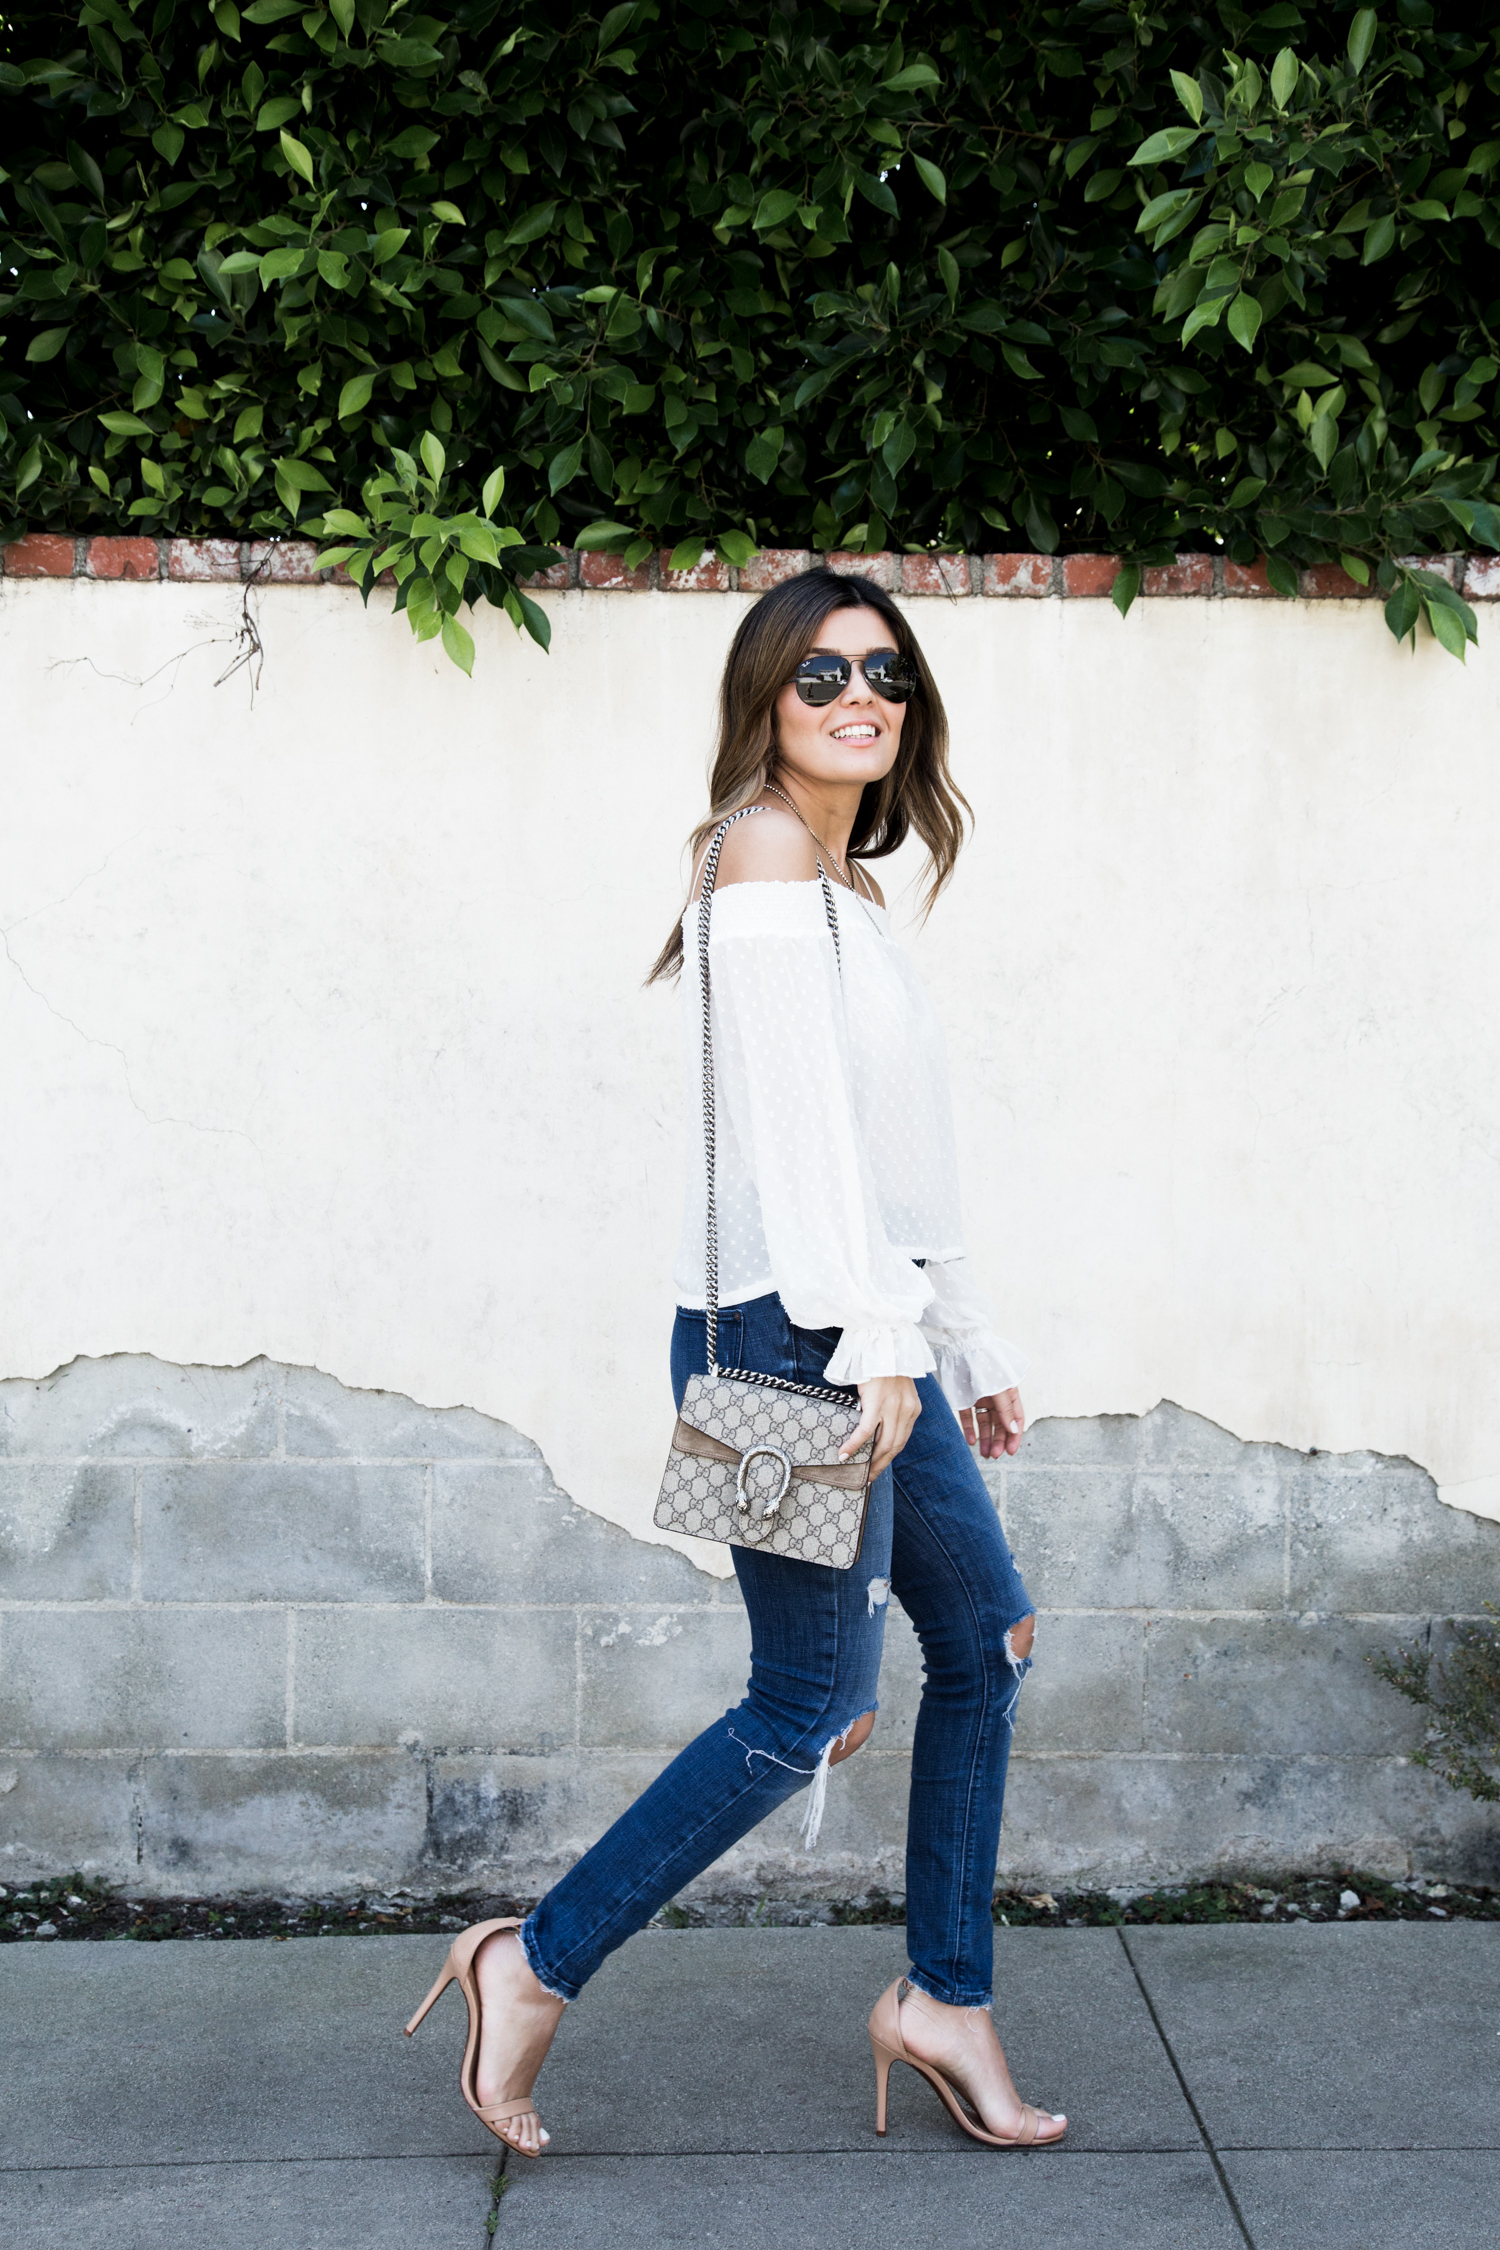 Off the shoulder top and denim look